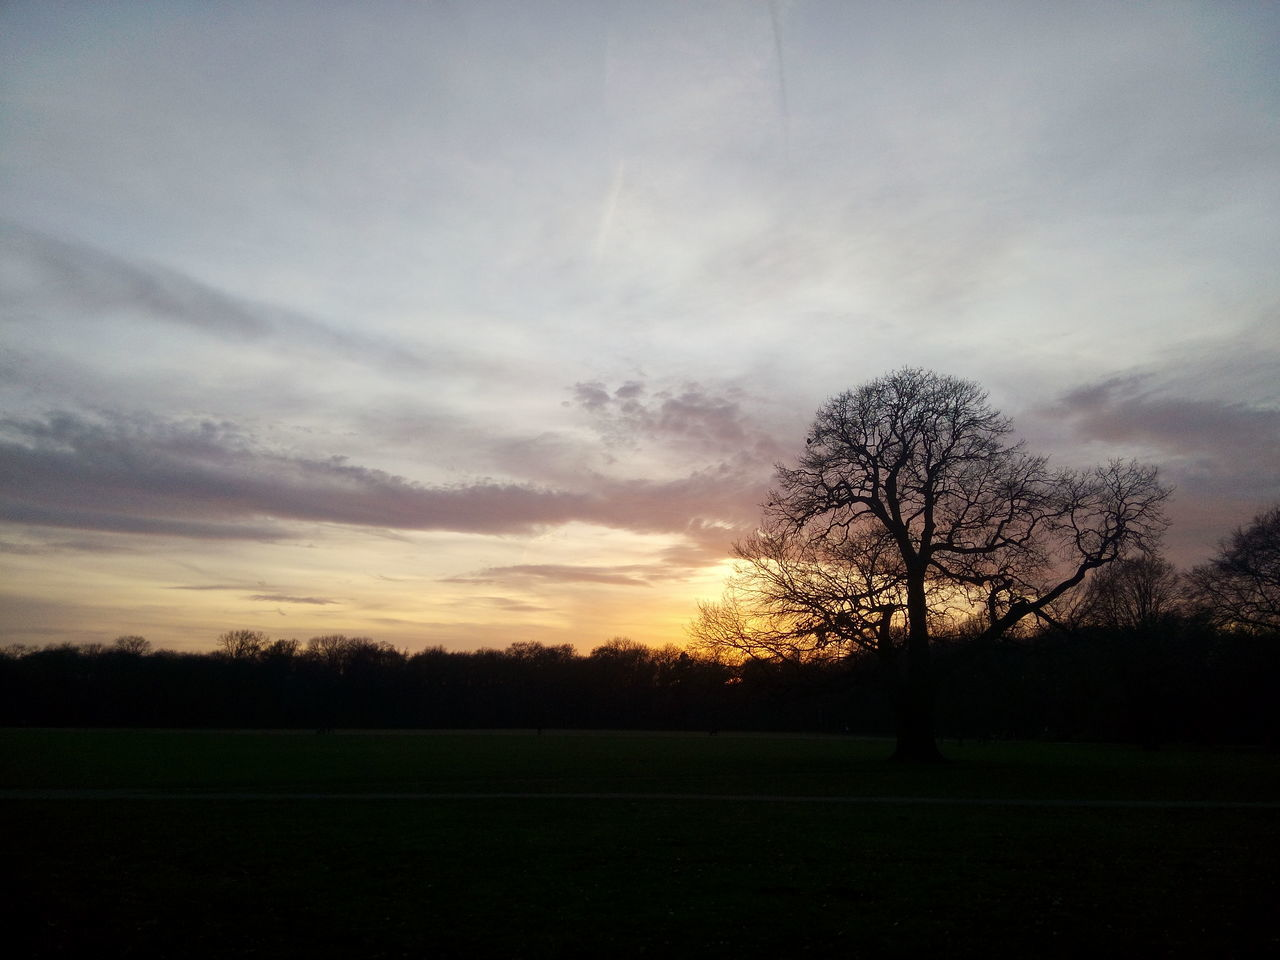 tree, beauty in nature, tranquility, nature, tranquil scene, landscape, scenics, field, majestic, sunset, sky, silhouette, bare tree, no people, grass, outdoors, day